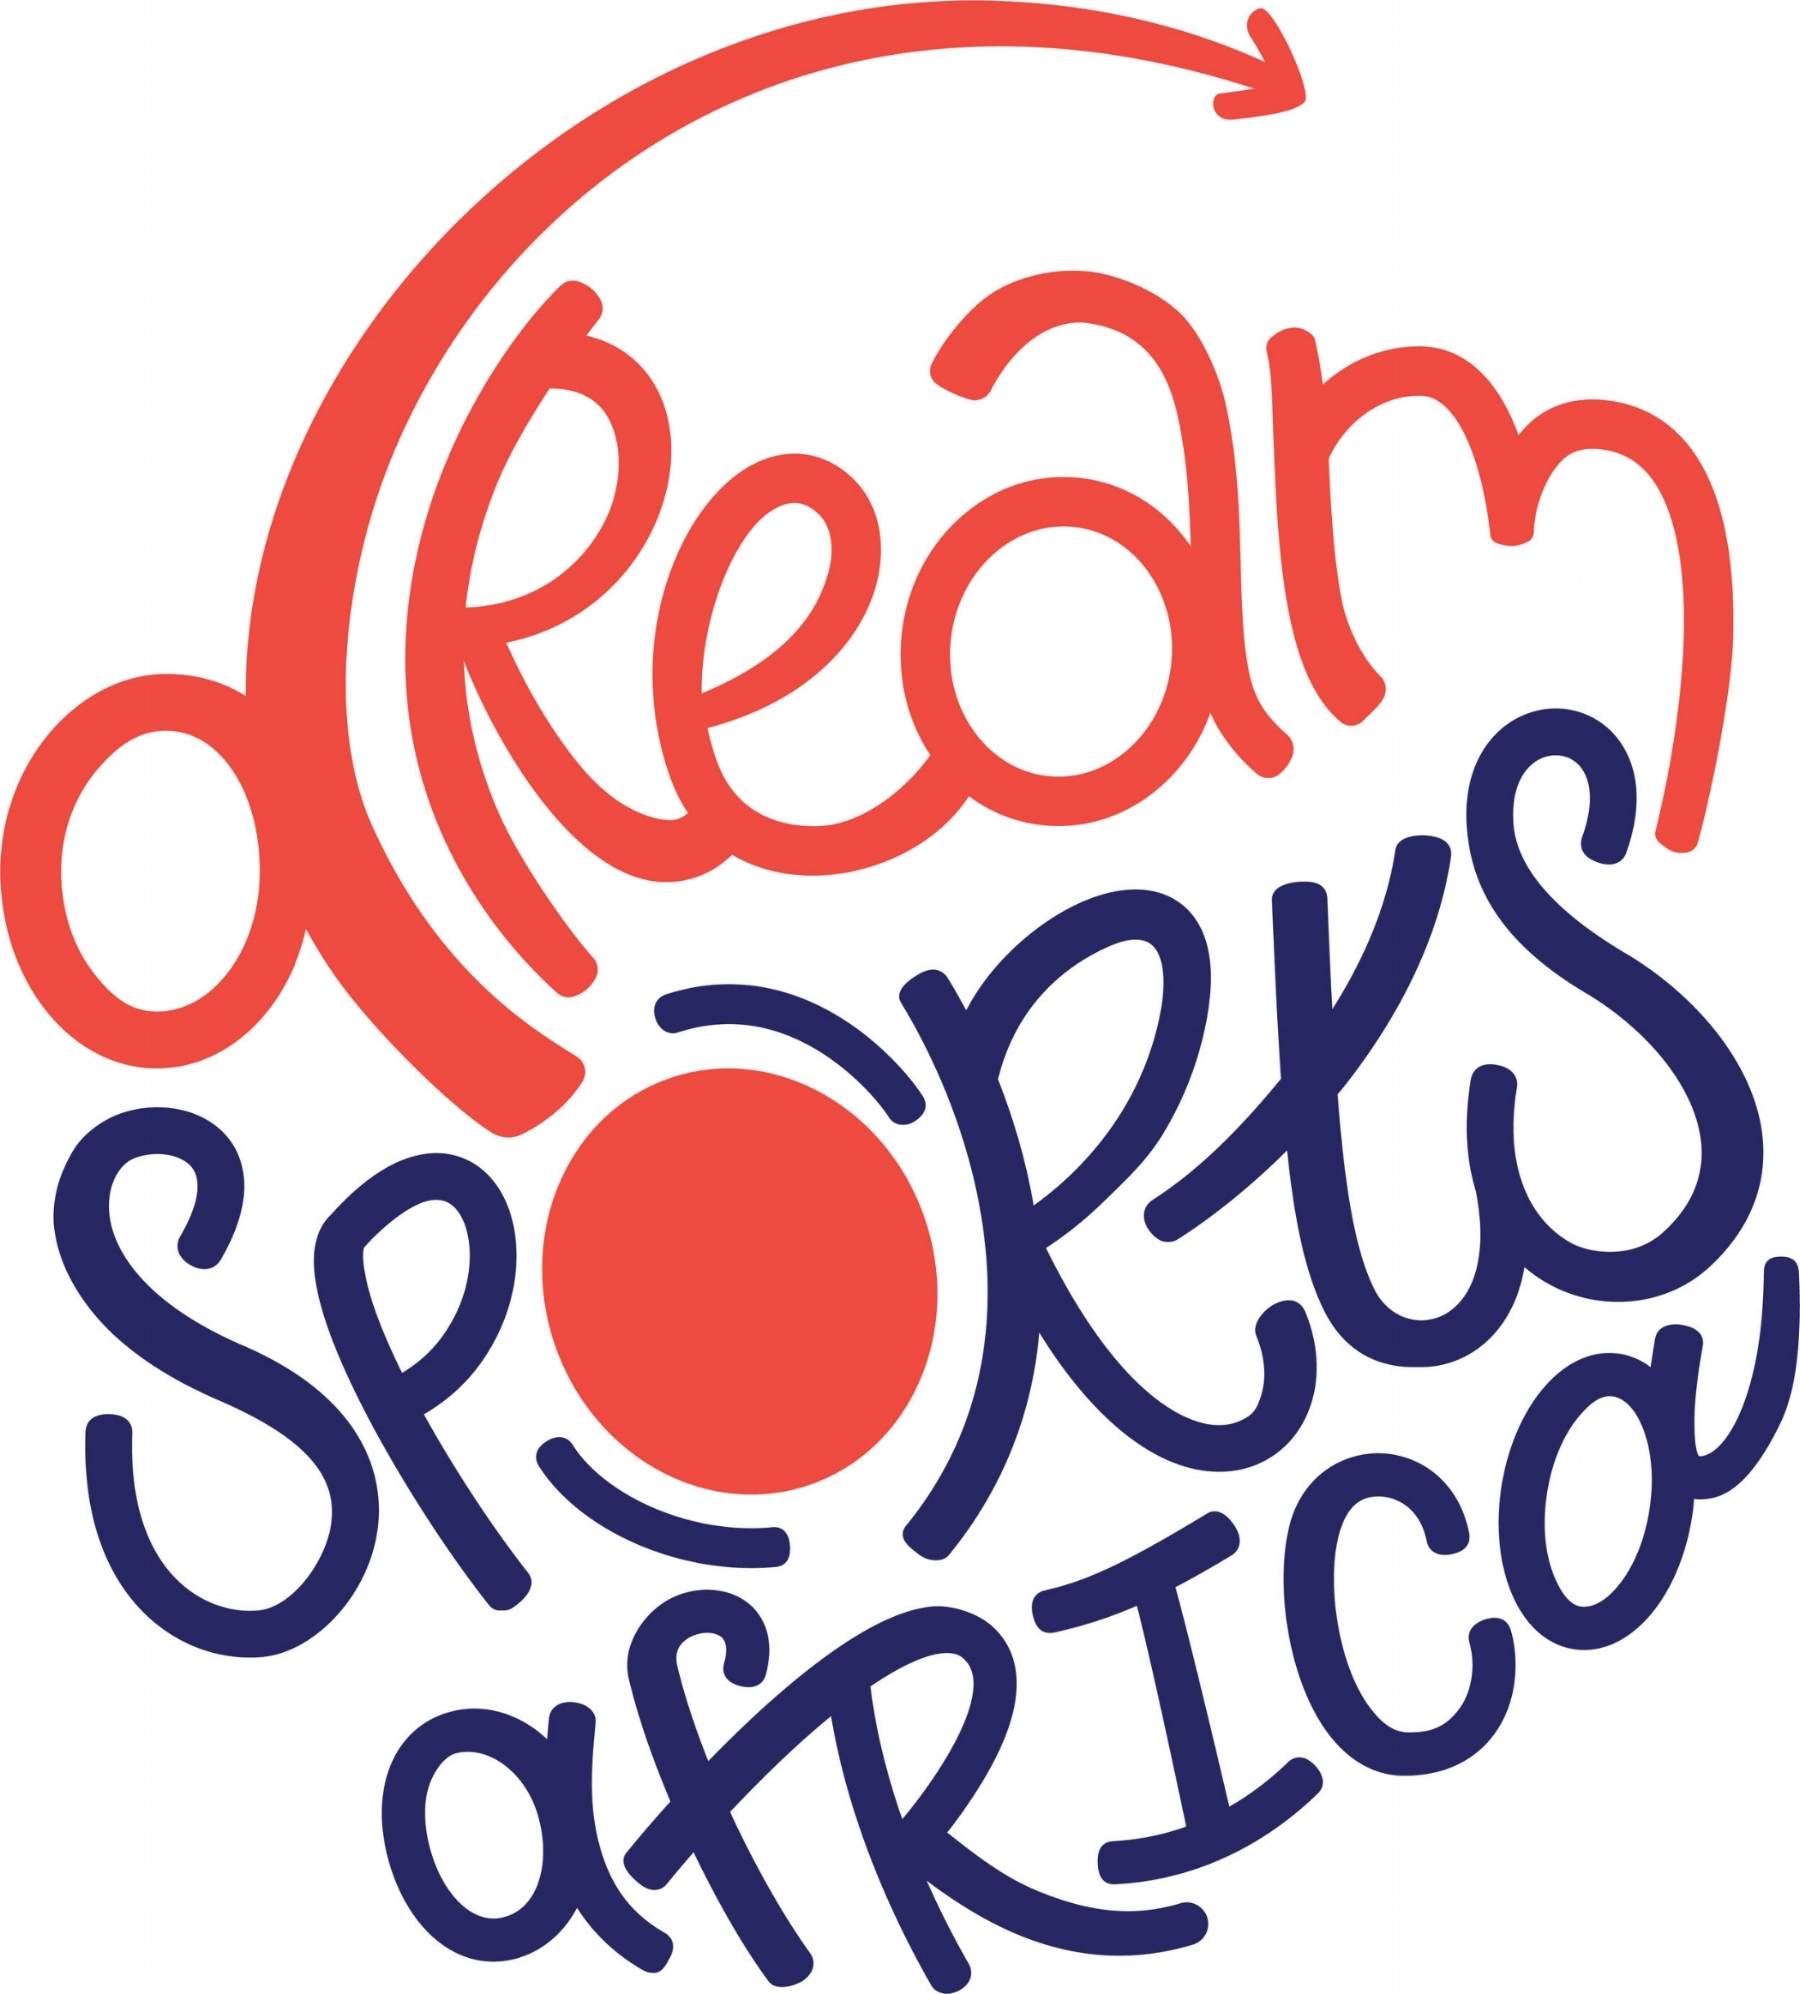 Dream Sports Africa   Dream Sports Africa was founded by Diaspora Africans and Americans with a passion to give back the gift of actualization to young people whose shoes they were in not too long ago. Our initial programming focuses on Nigeria which accounts for about 20% of the African youth population and the West Africa region.